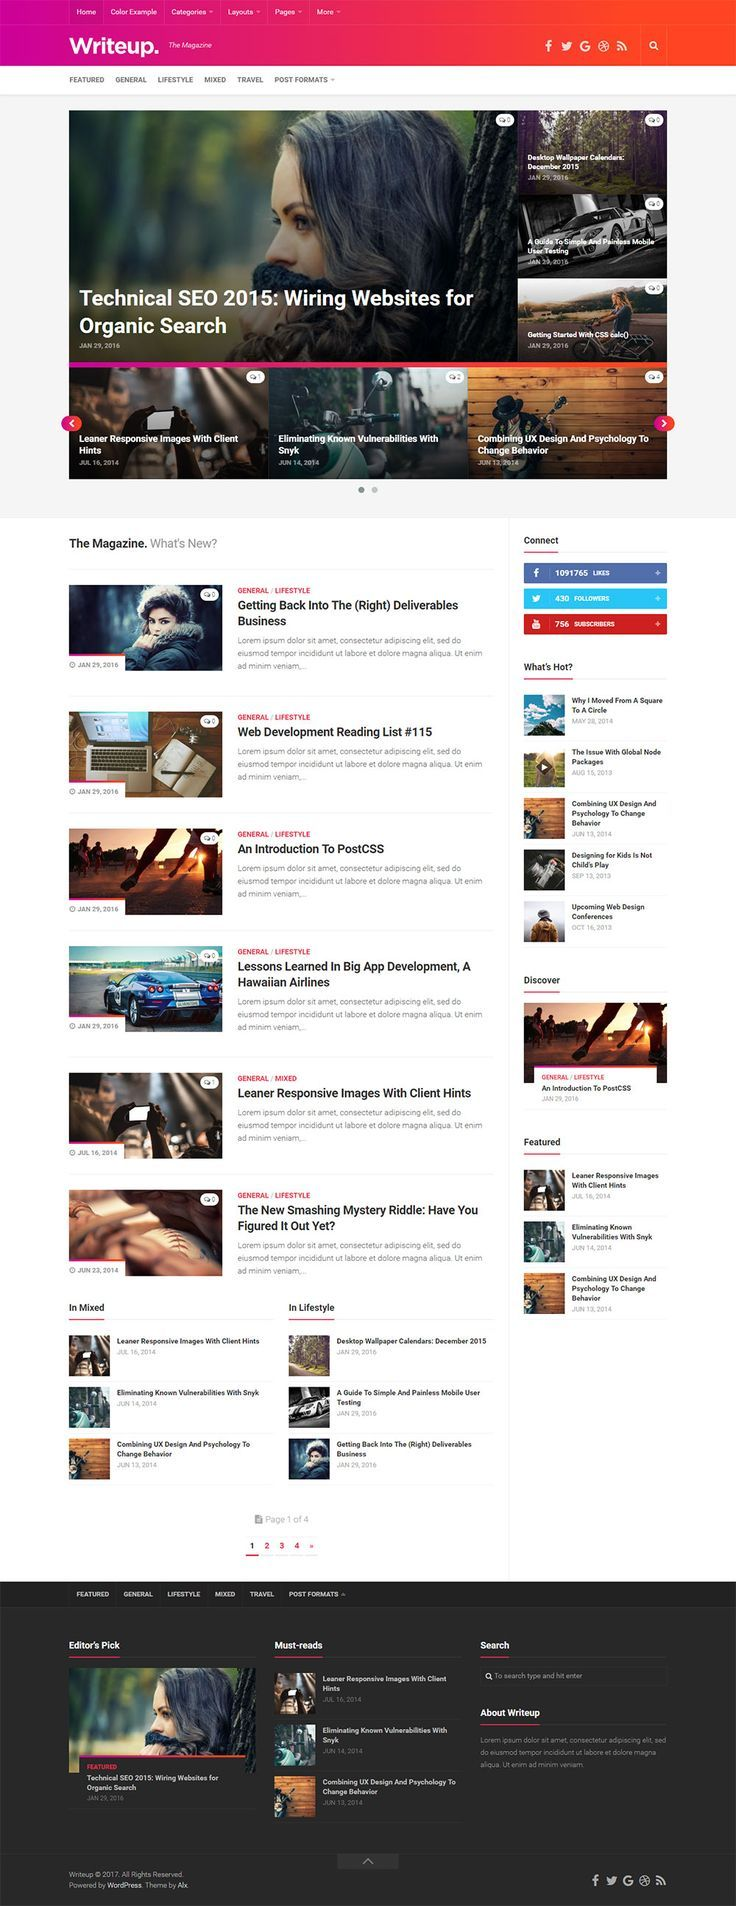 Writeup is a colorful responsive high resolution magazine, news & blog theme. With unique slide-toggle sidebars and modern gradient styles, the viewing and reading experience is fantastic on all devices. Built on a foundation loved by thousands, this theme will inspire you to write. https://themeforest.net/item/writeup-responsive-wordpress-magazine-theme/19468273?ref=rabosch